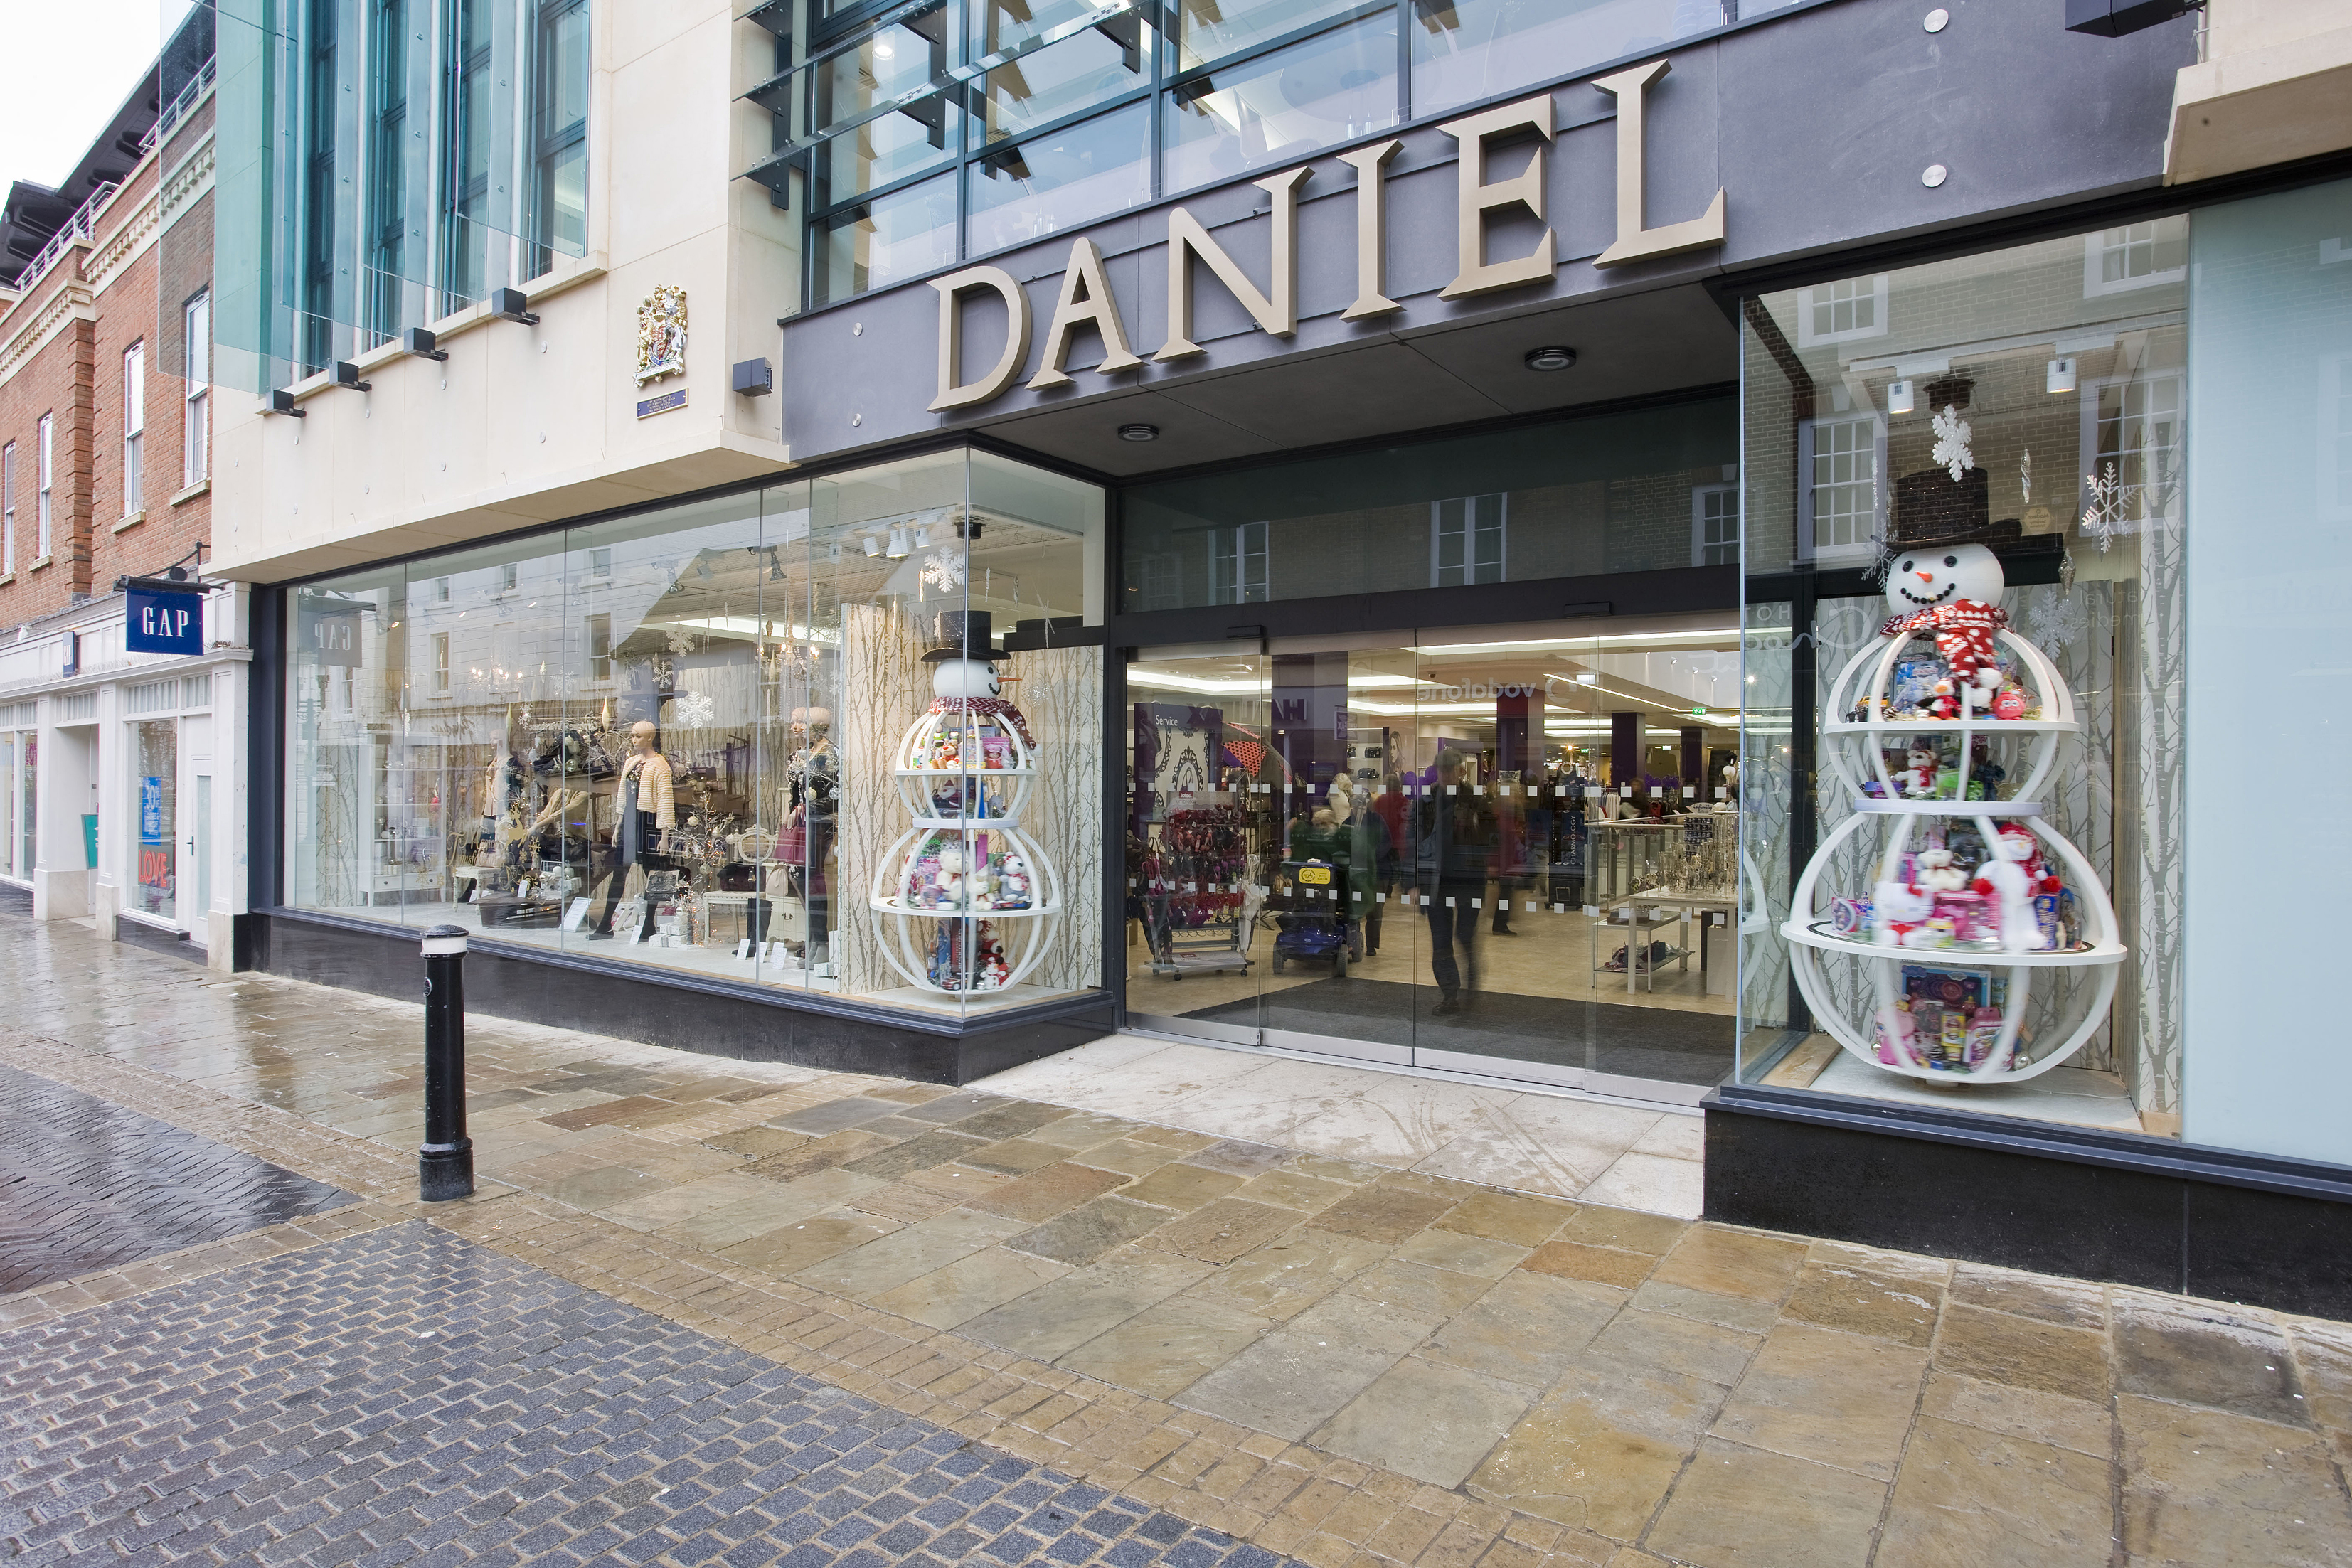 bac4cb9b690d Daniel Department Store is located in the heart of Windsor town centre. Not  only is it the largest department store in Windsor, but is also home to  four ...